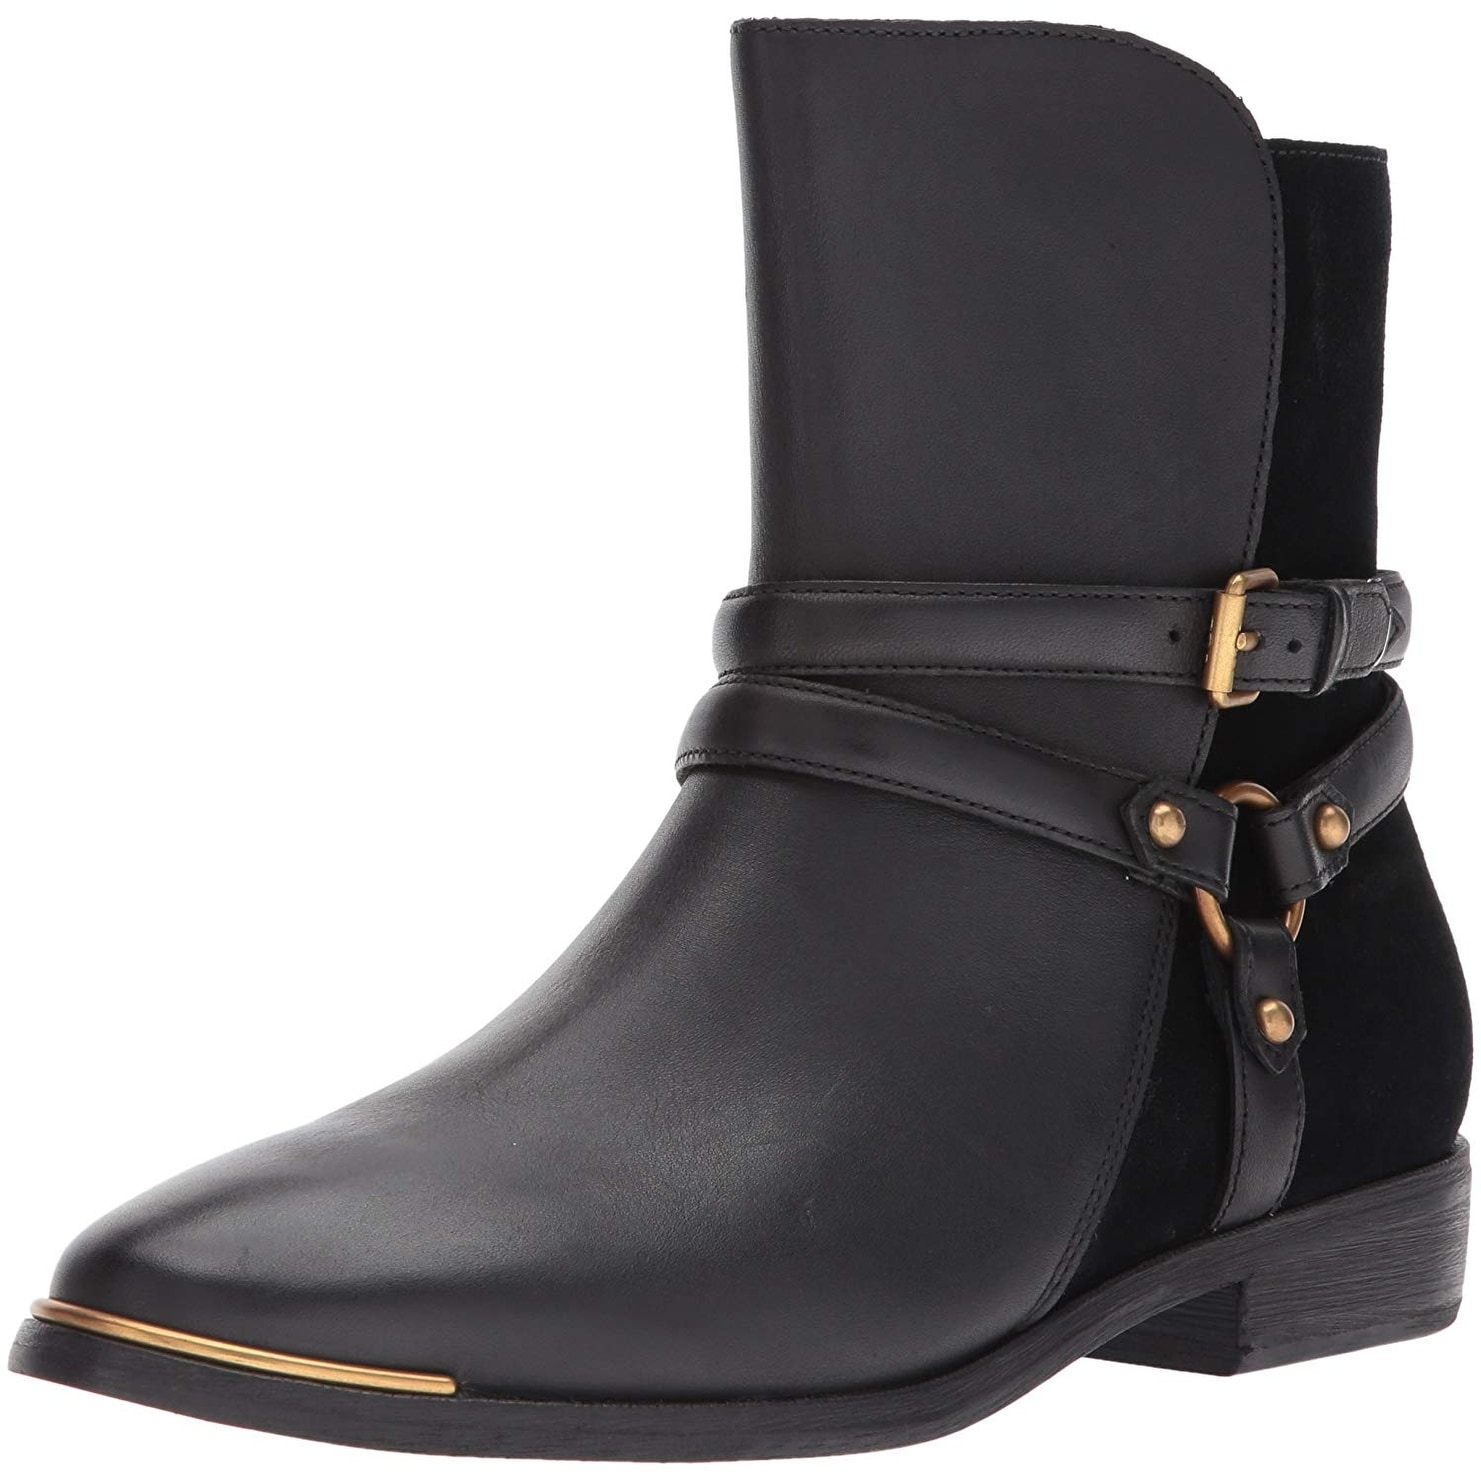 7704fbae02af Shop UGG Women s Kelby Boot - 6 - Free Shipping Today - Overstock ...